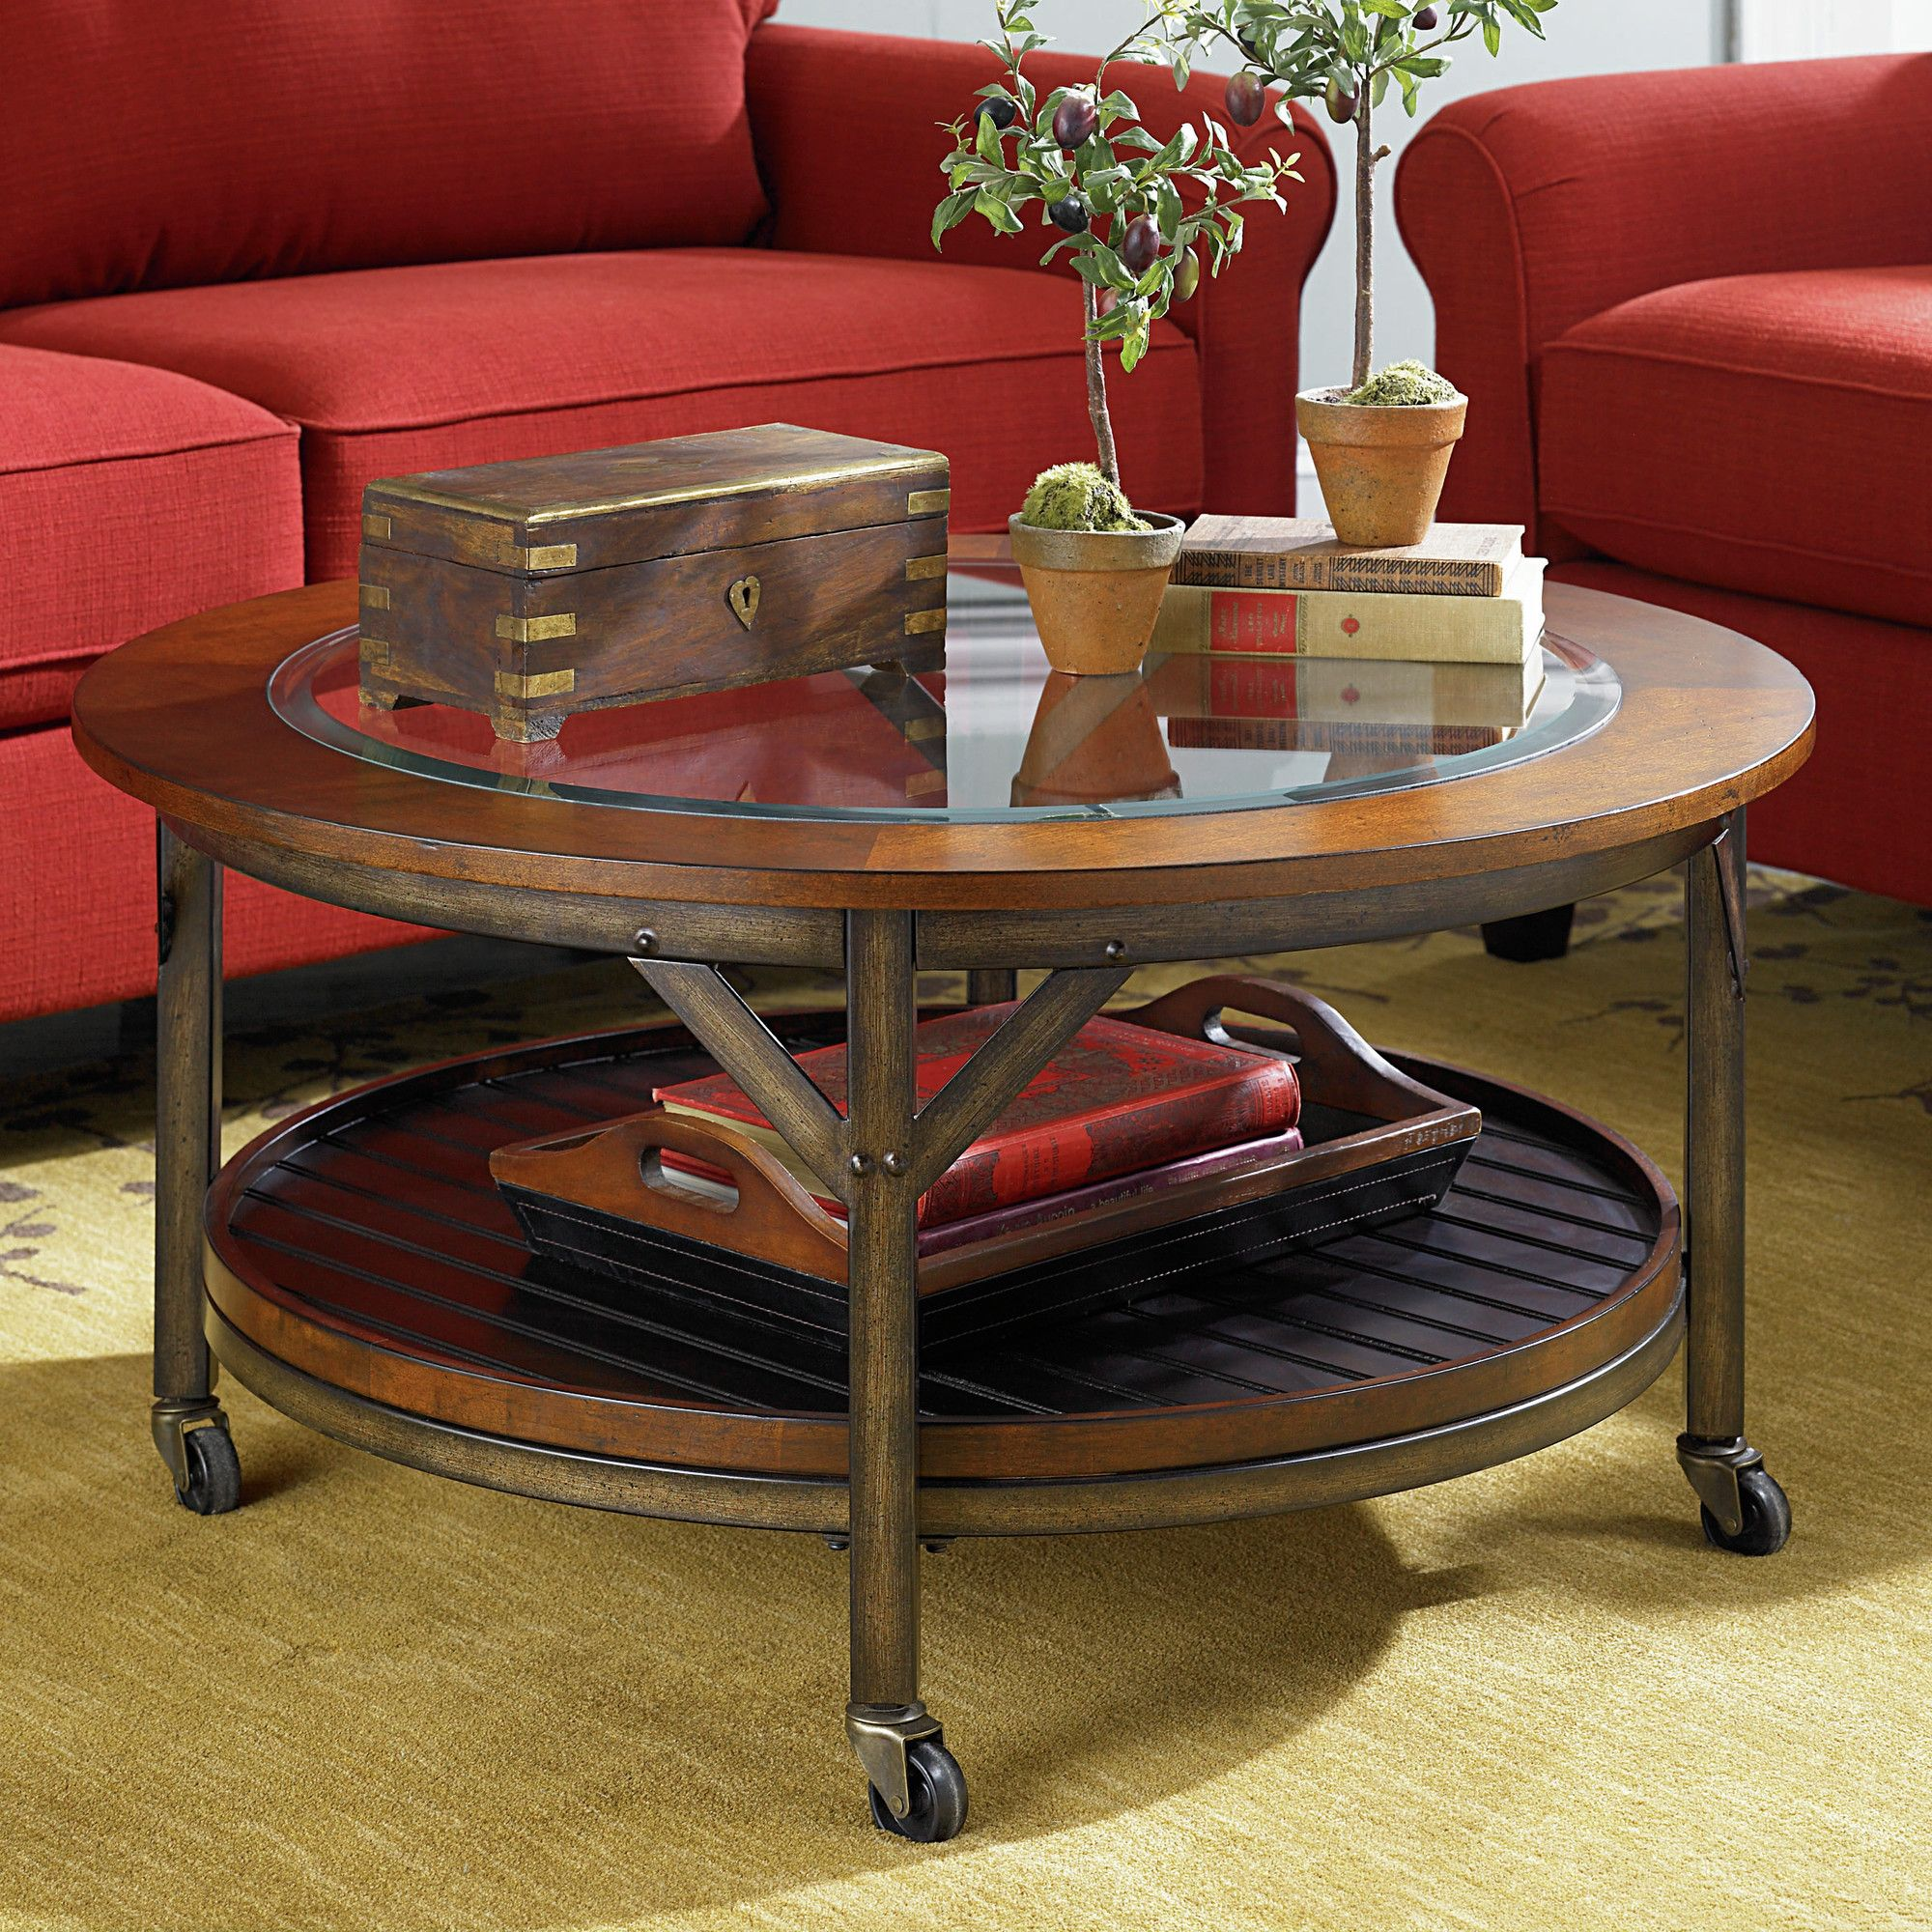 12++ Wayfair round upholstered coffee table inspirations